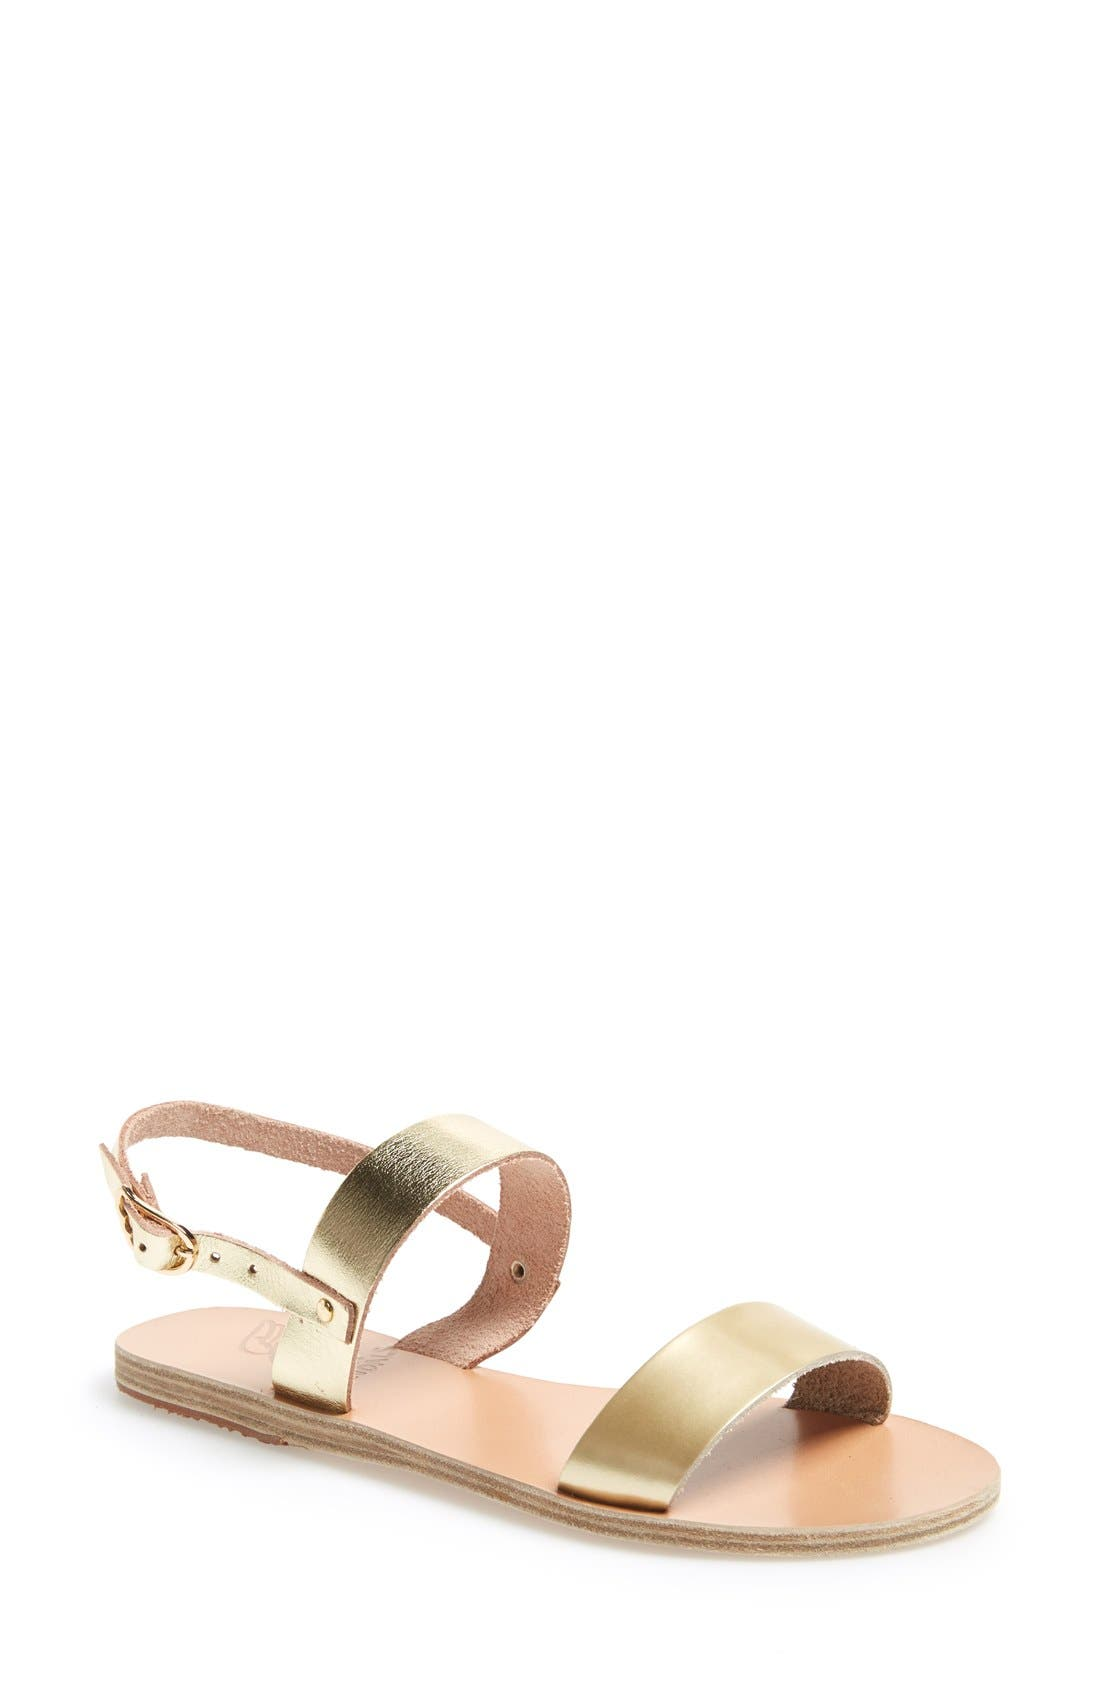 Alternate Image 1 Selected - Ancient Greek Sandals 'Clio' Leather Sandal (Women)